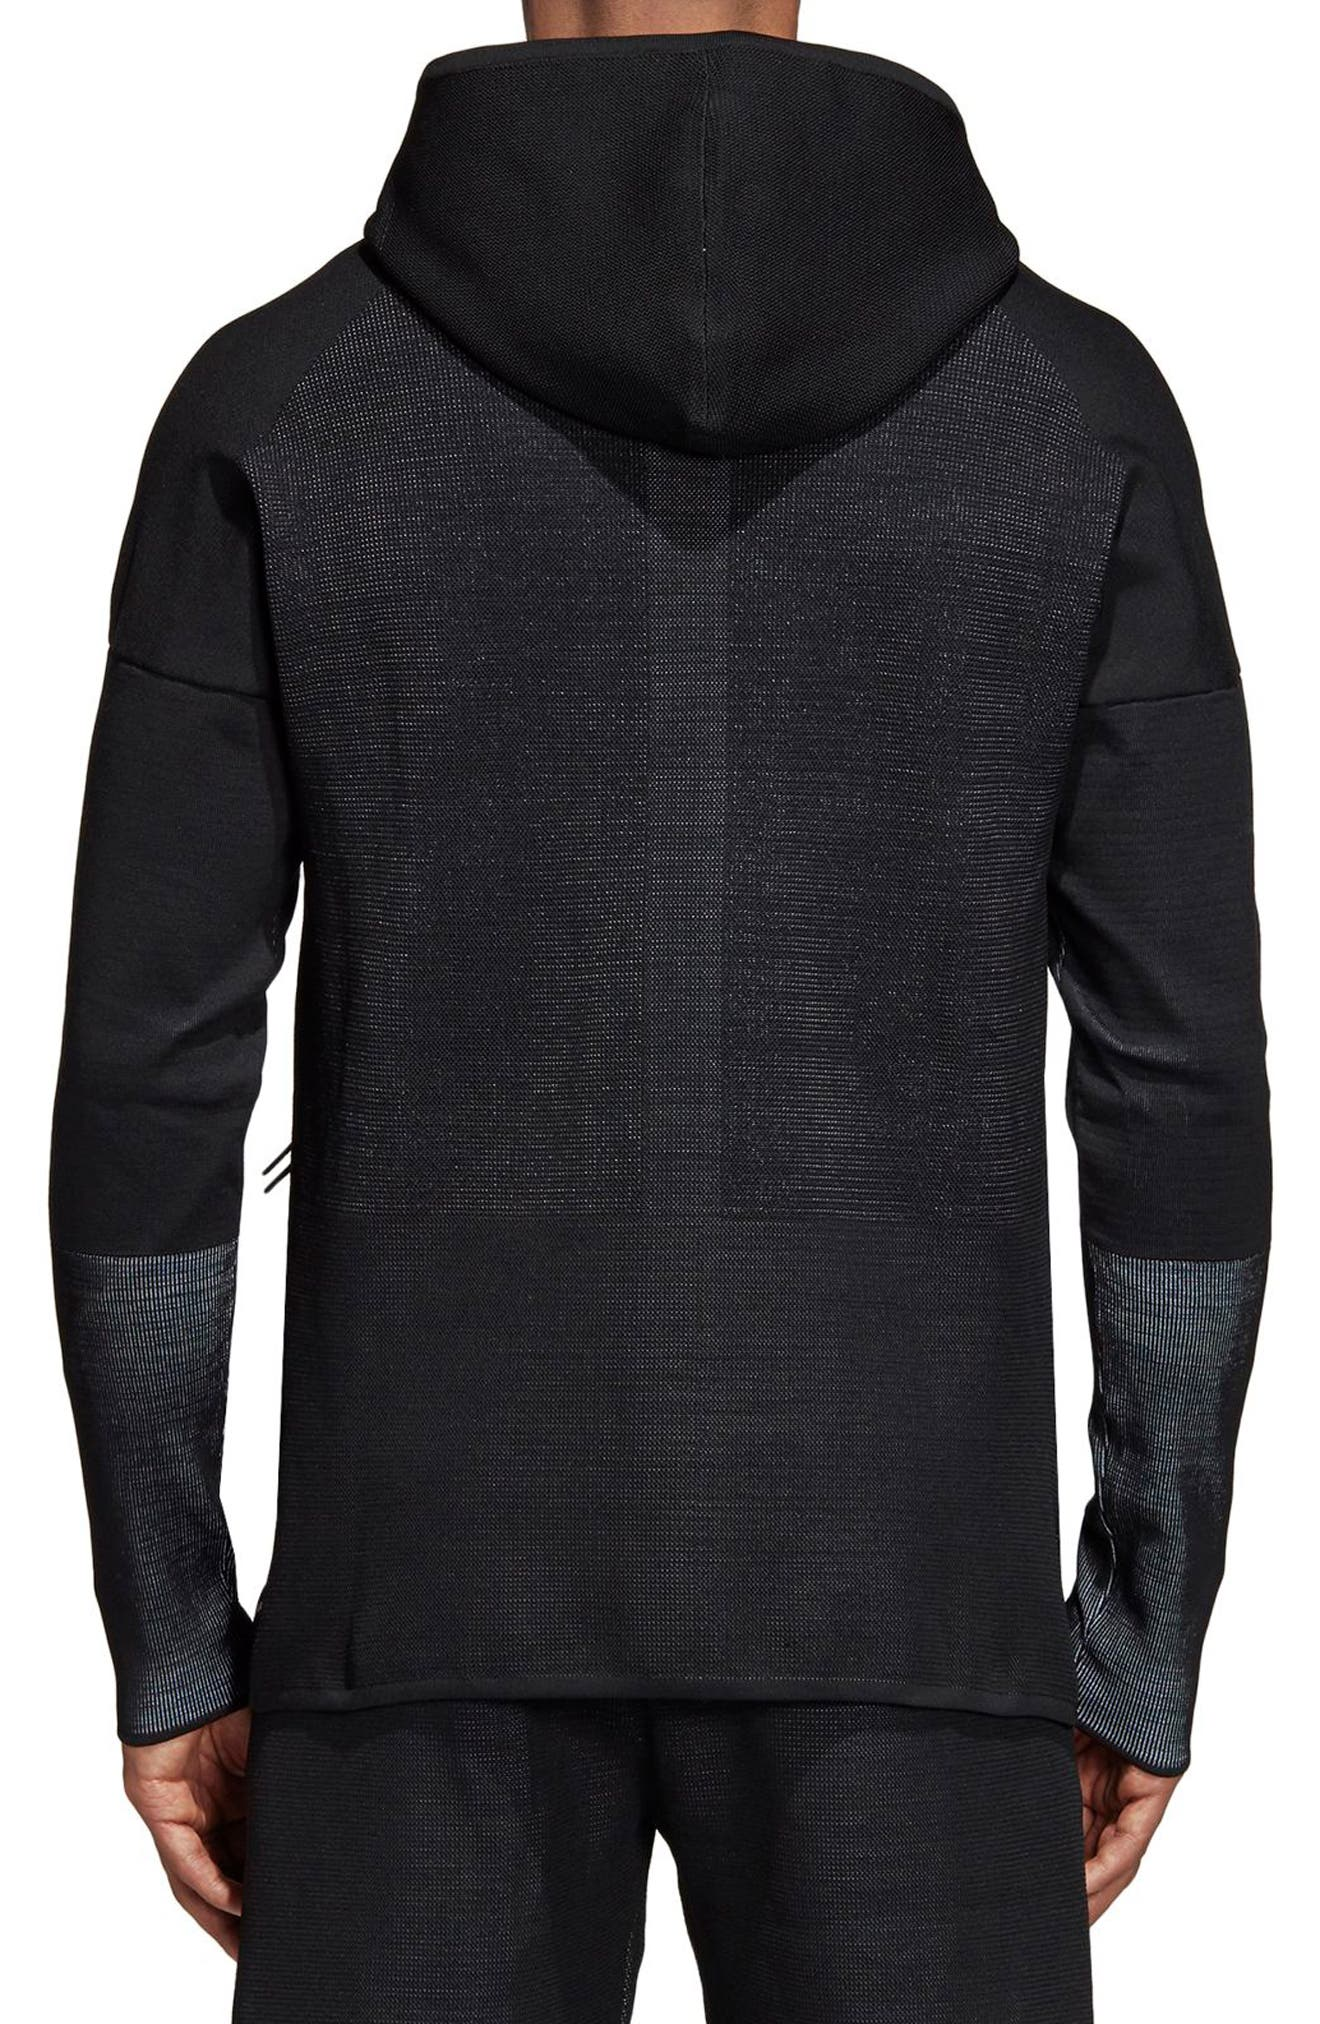 ZNE Parley Primeknit Hoodie,                             Alternate thumbnail 2, color,                             001